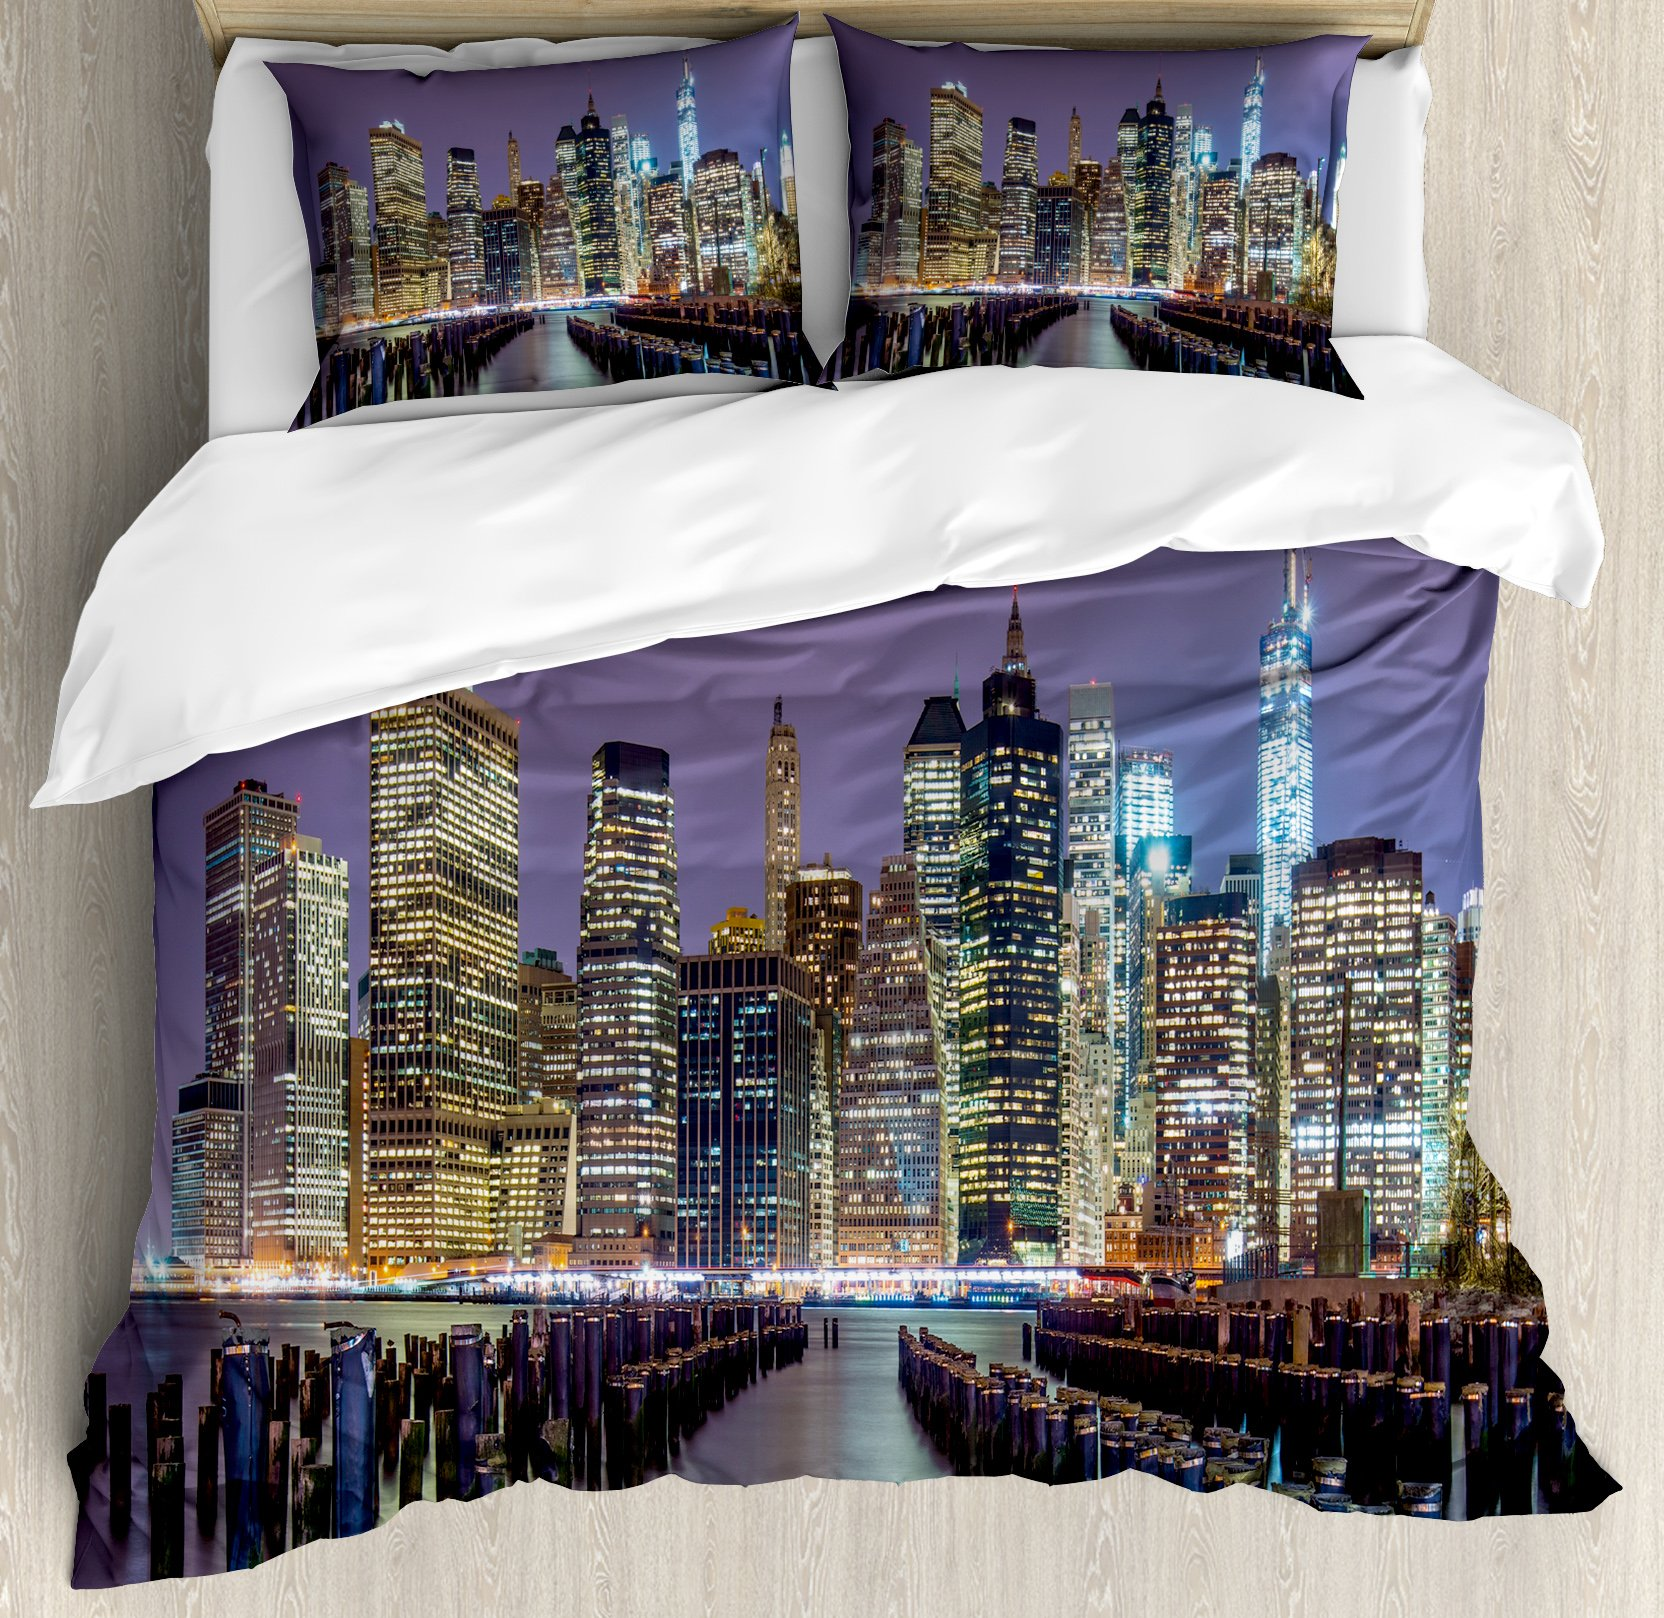 Lunarable New York City Duvet Cover Set Queen Size, Lower Manhattan Skyline from Across the East River United States of America, Decorative 3 Piece Bedding Set with 2 Pillow Shams, Lilac Yellow